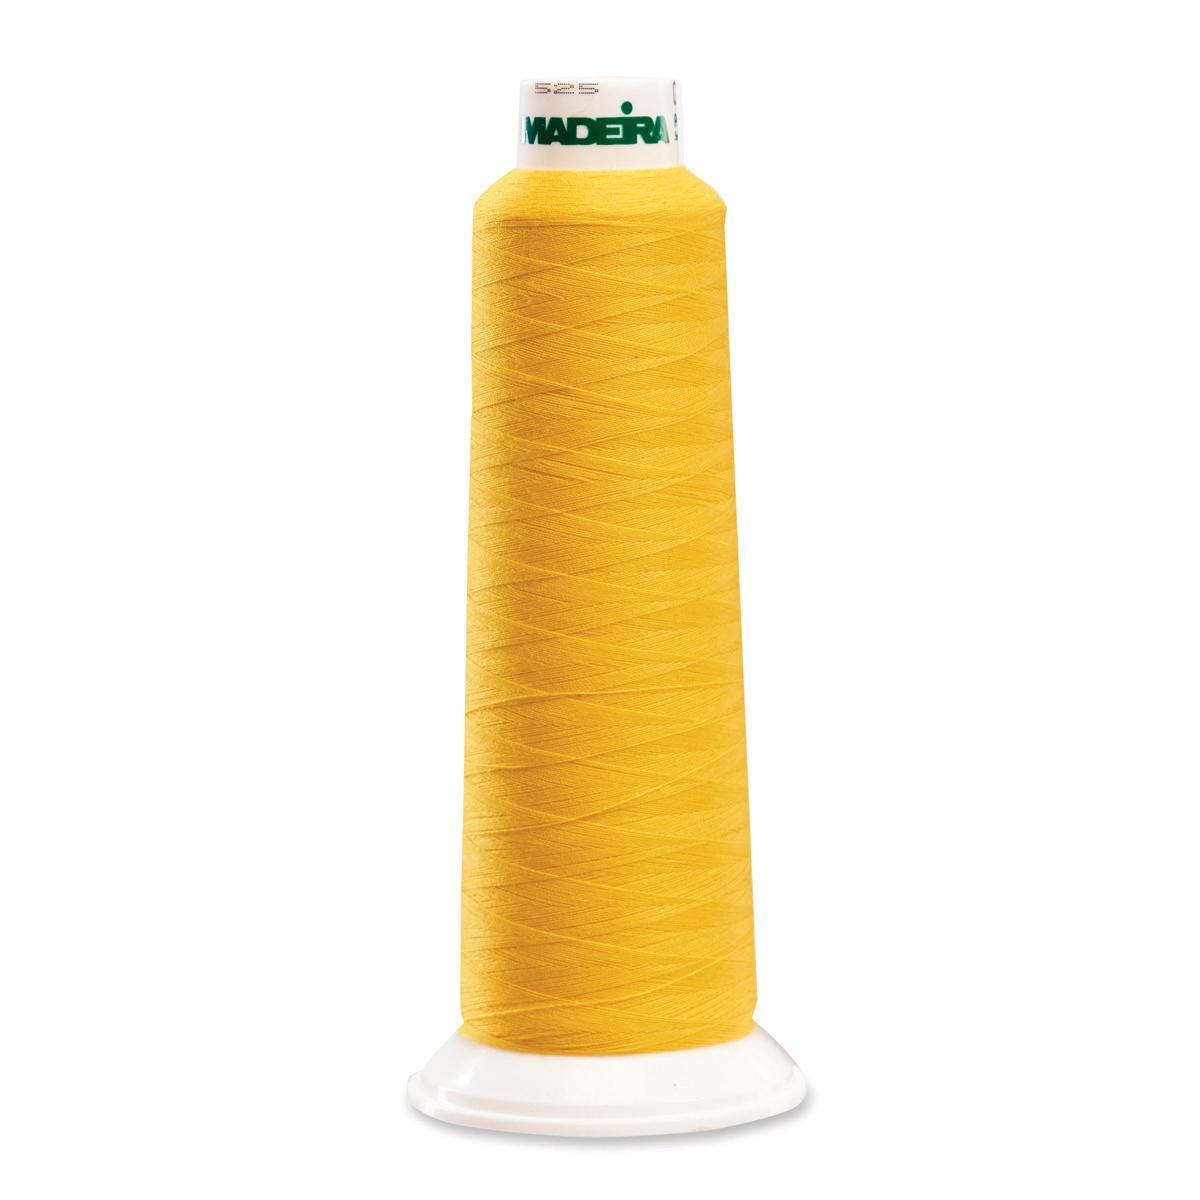 Madeira Serger Thread - Yellow